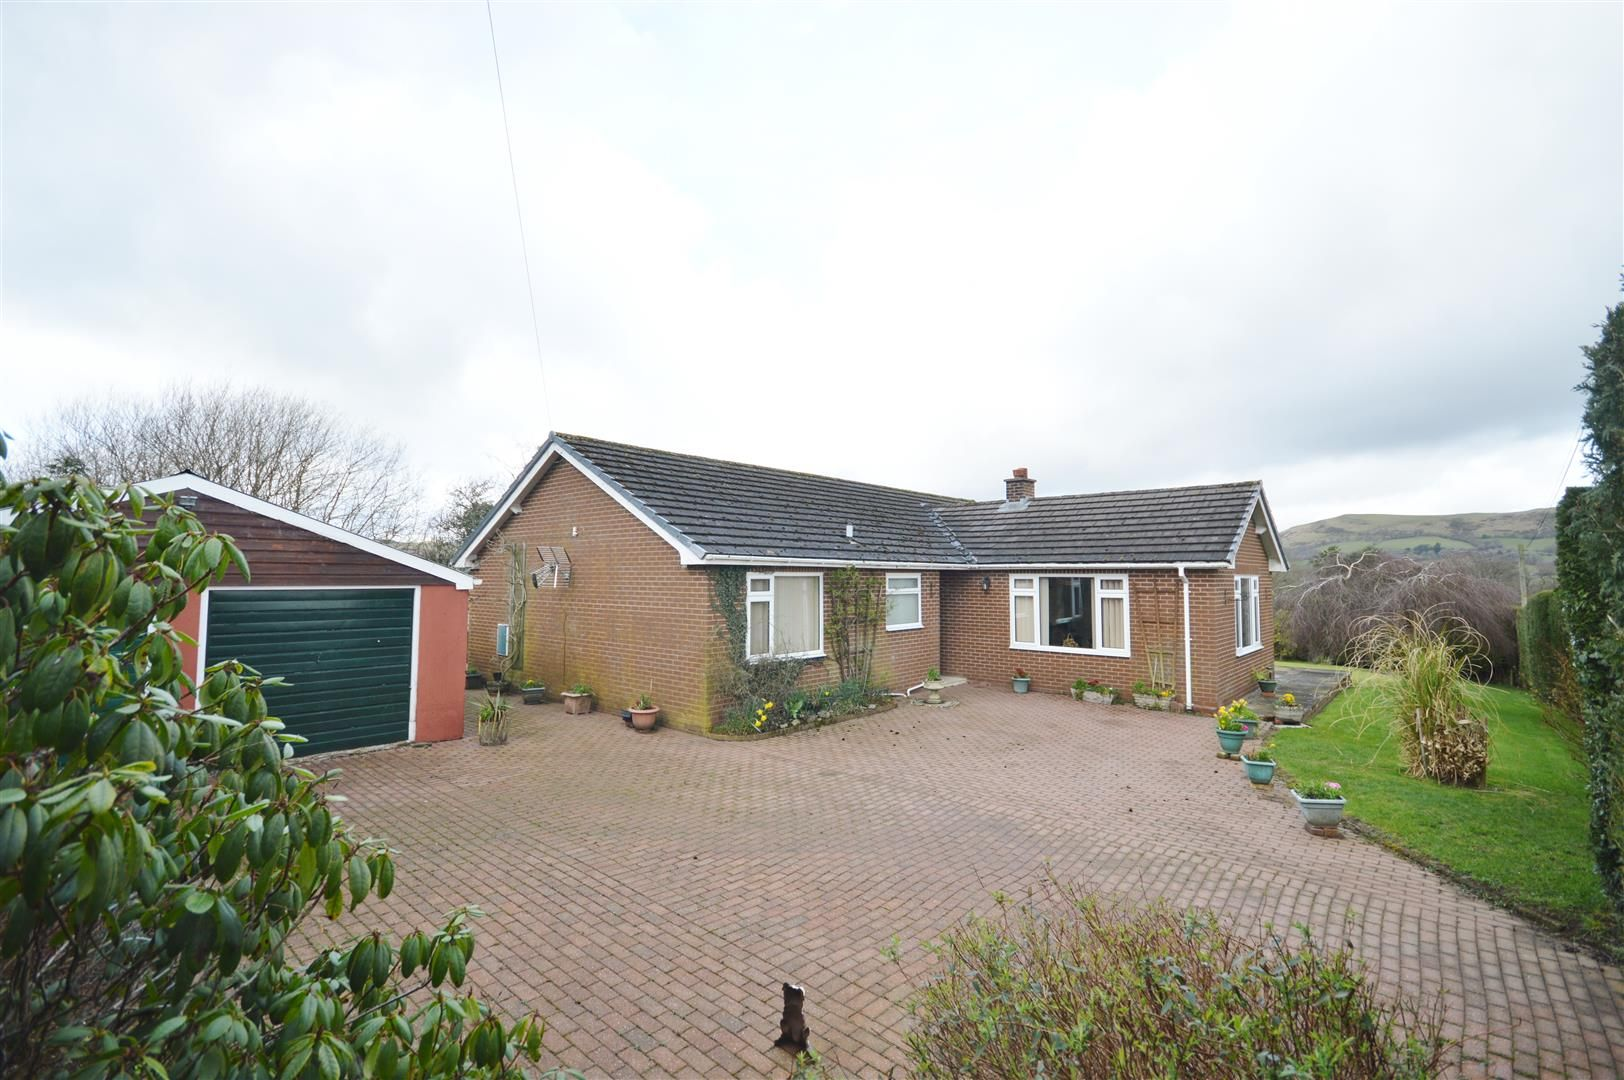 3 bed detached-bungalow for sale in Llandrindod Wells - Property Image 1